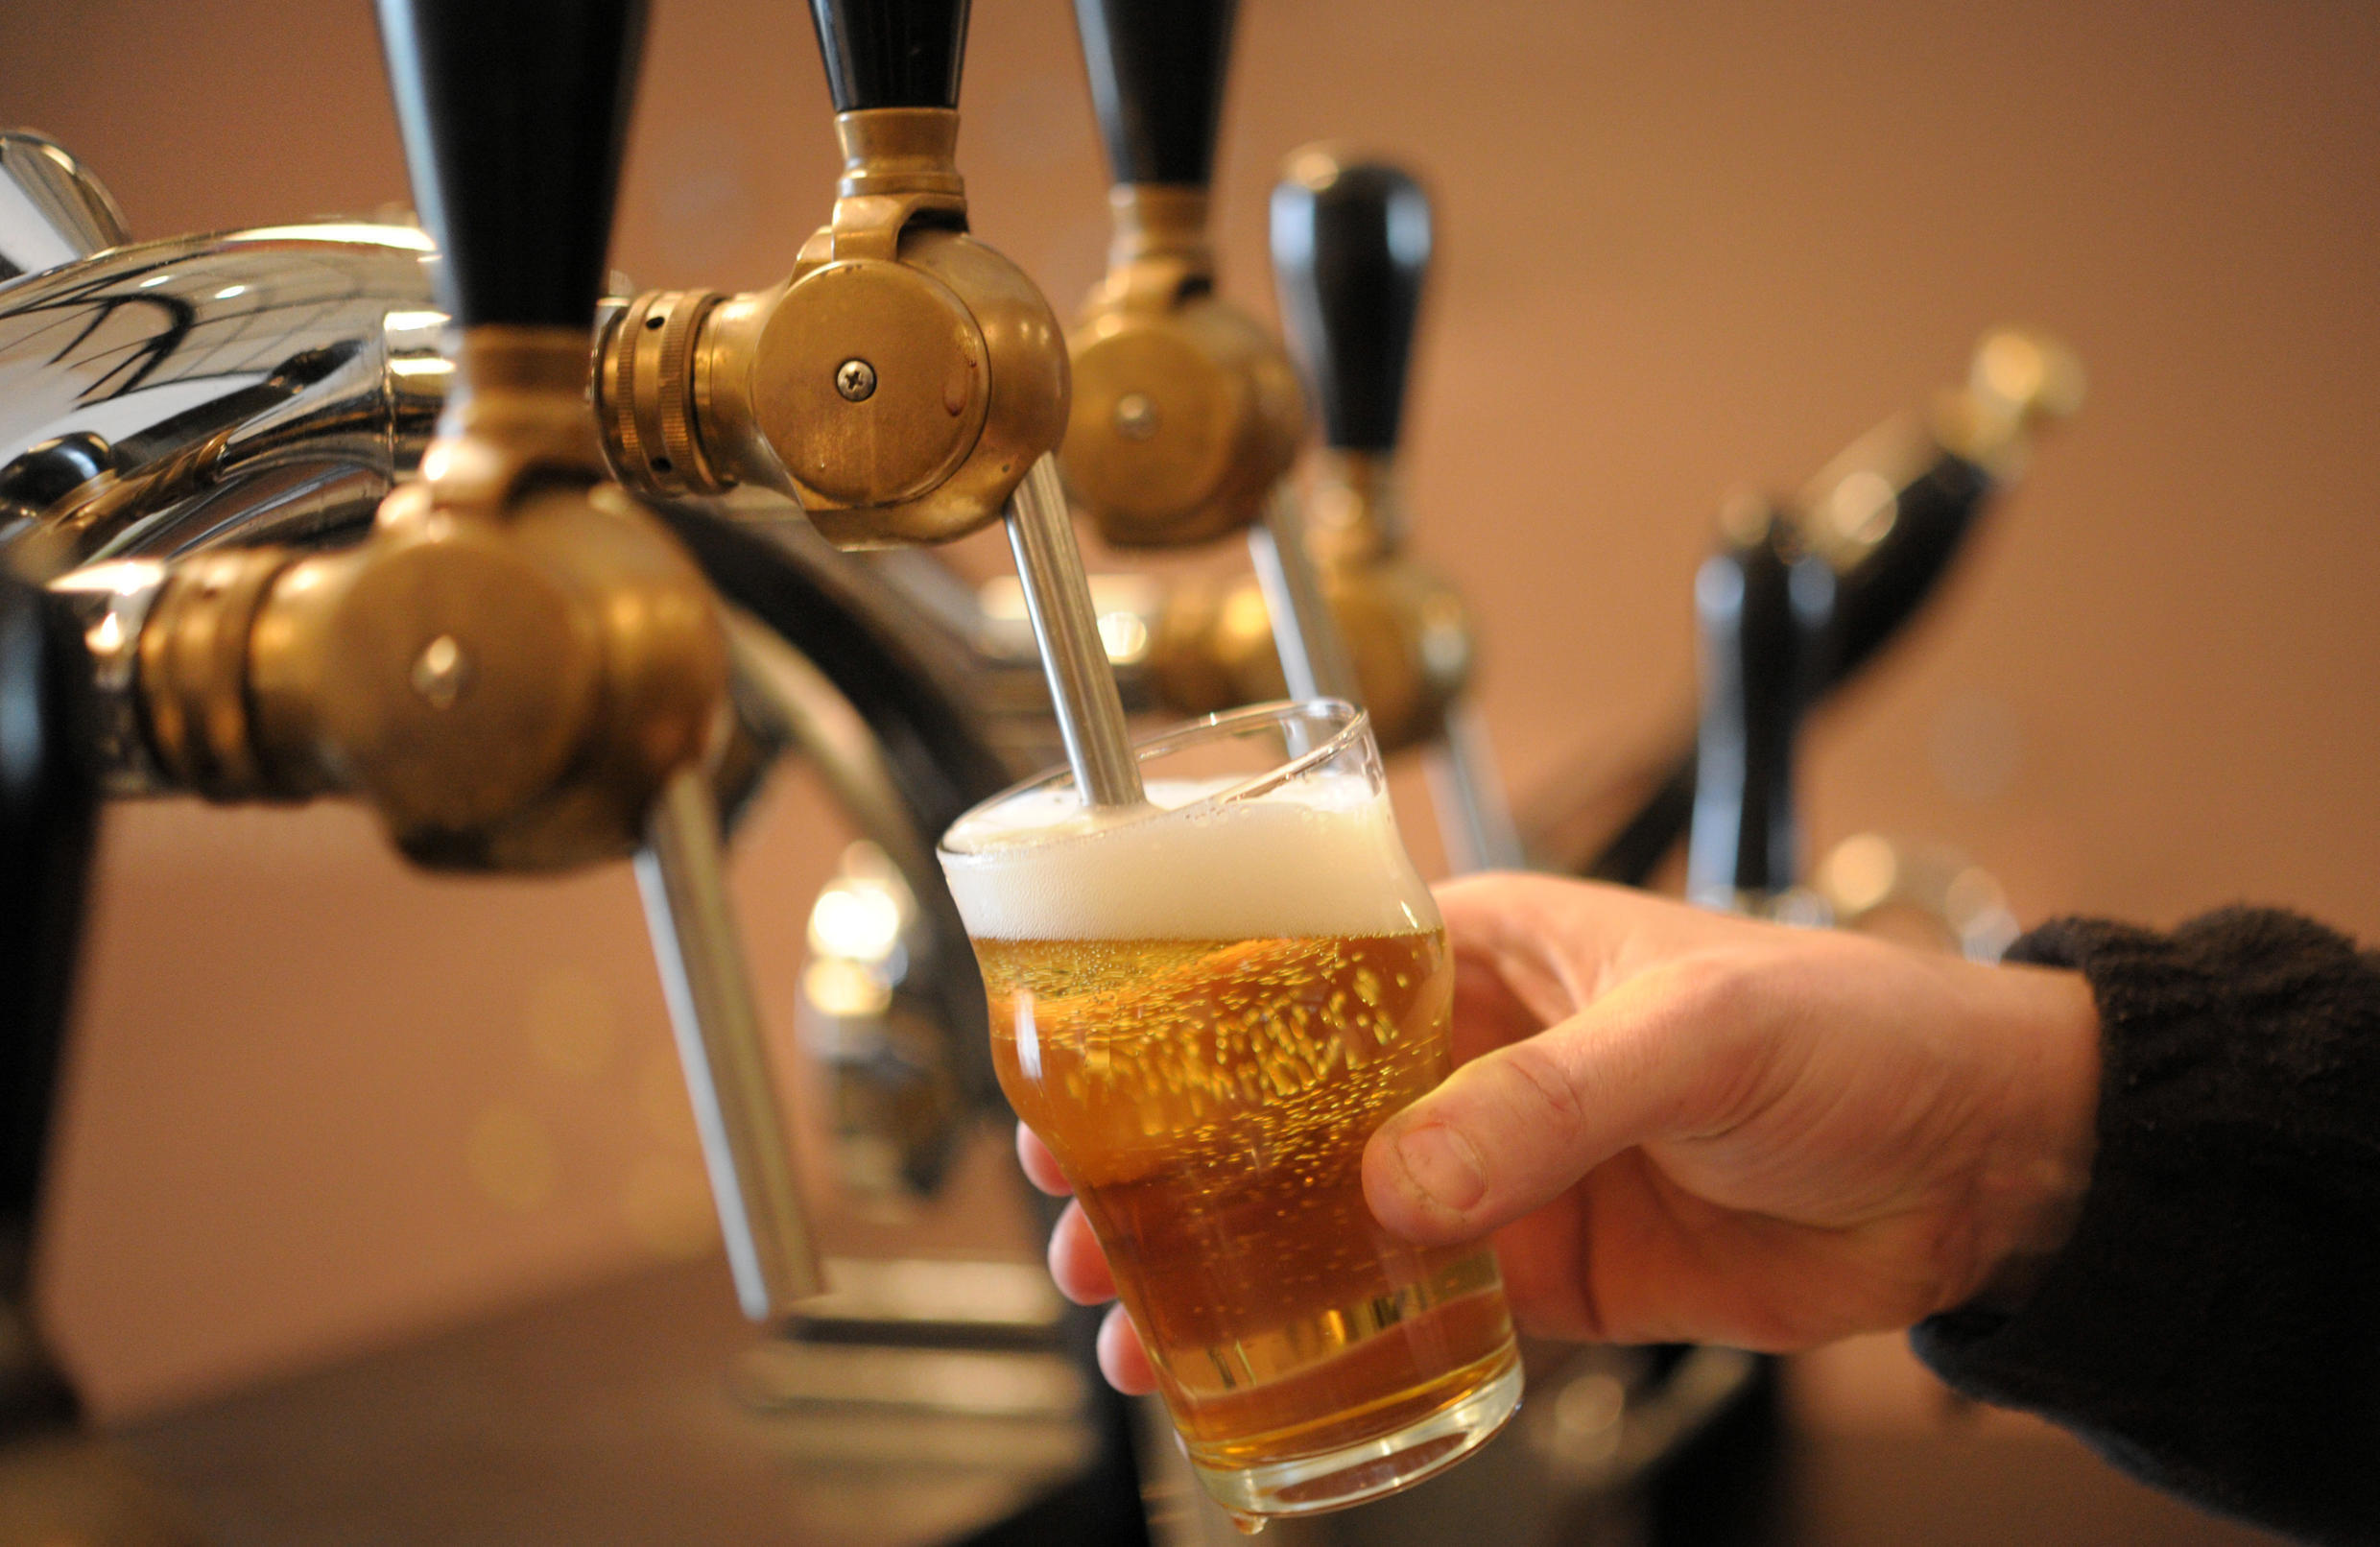 Lockdowns are no small beer for brewers who depend on bars, restaurants and sporting matches for much of their business